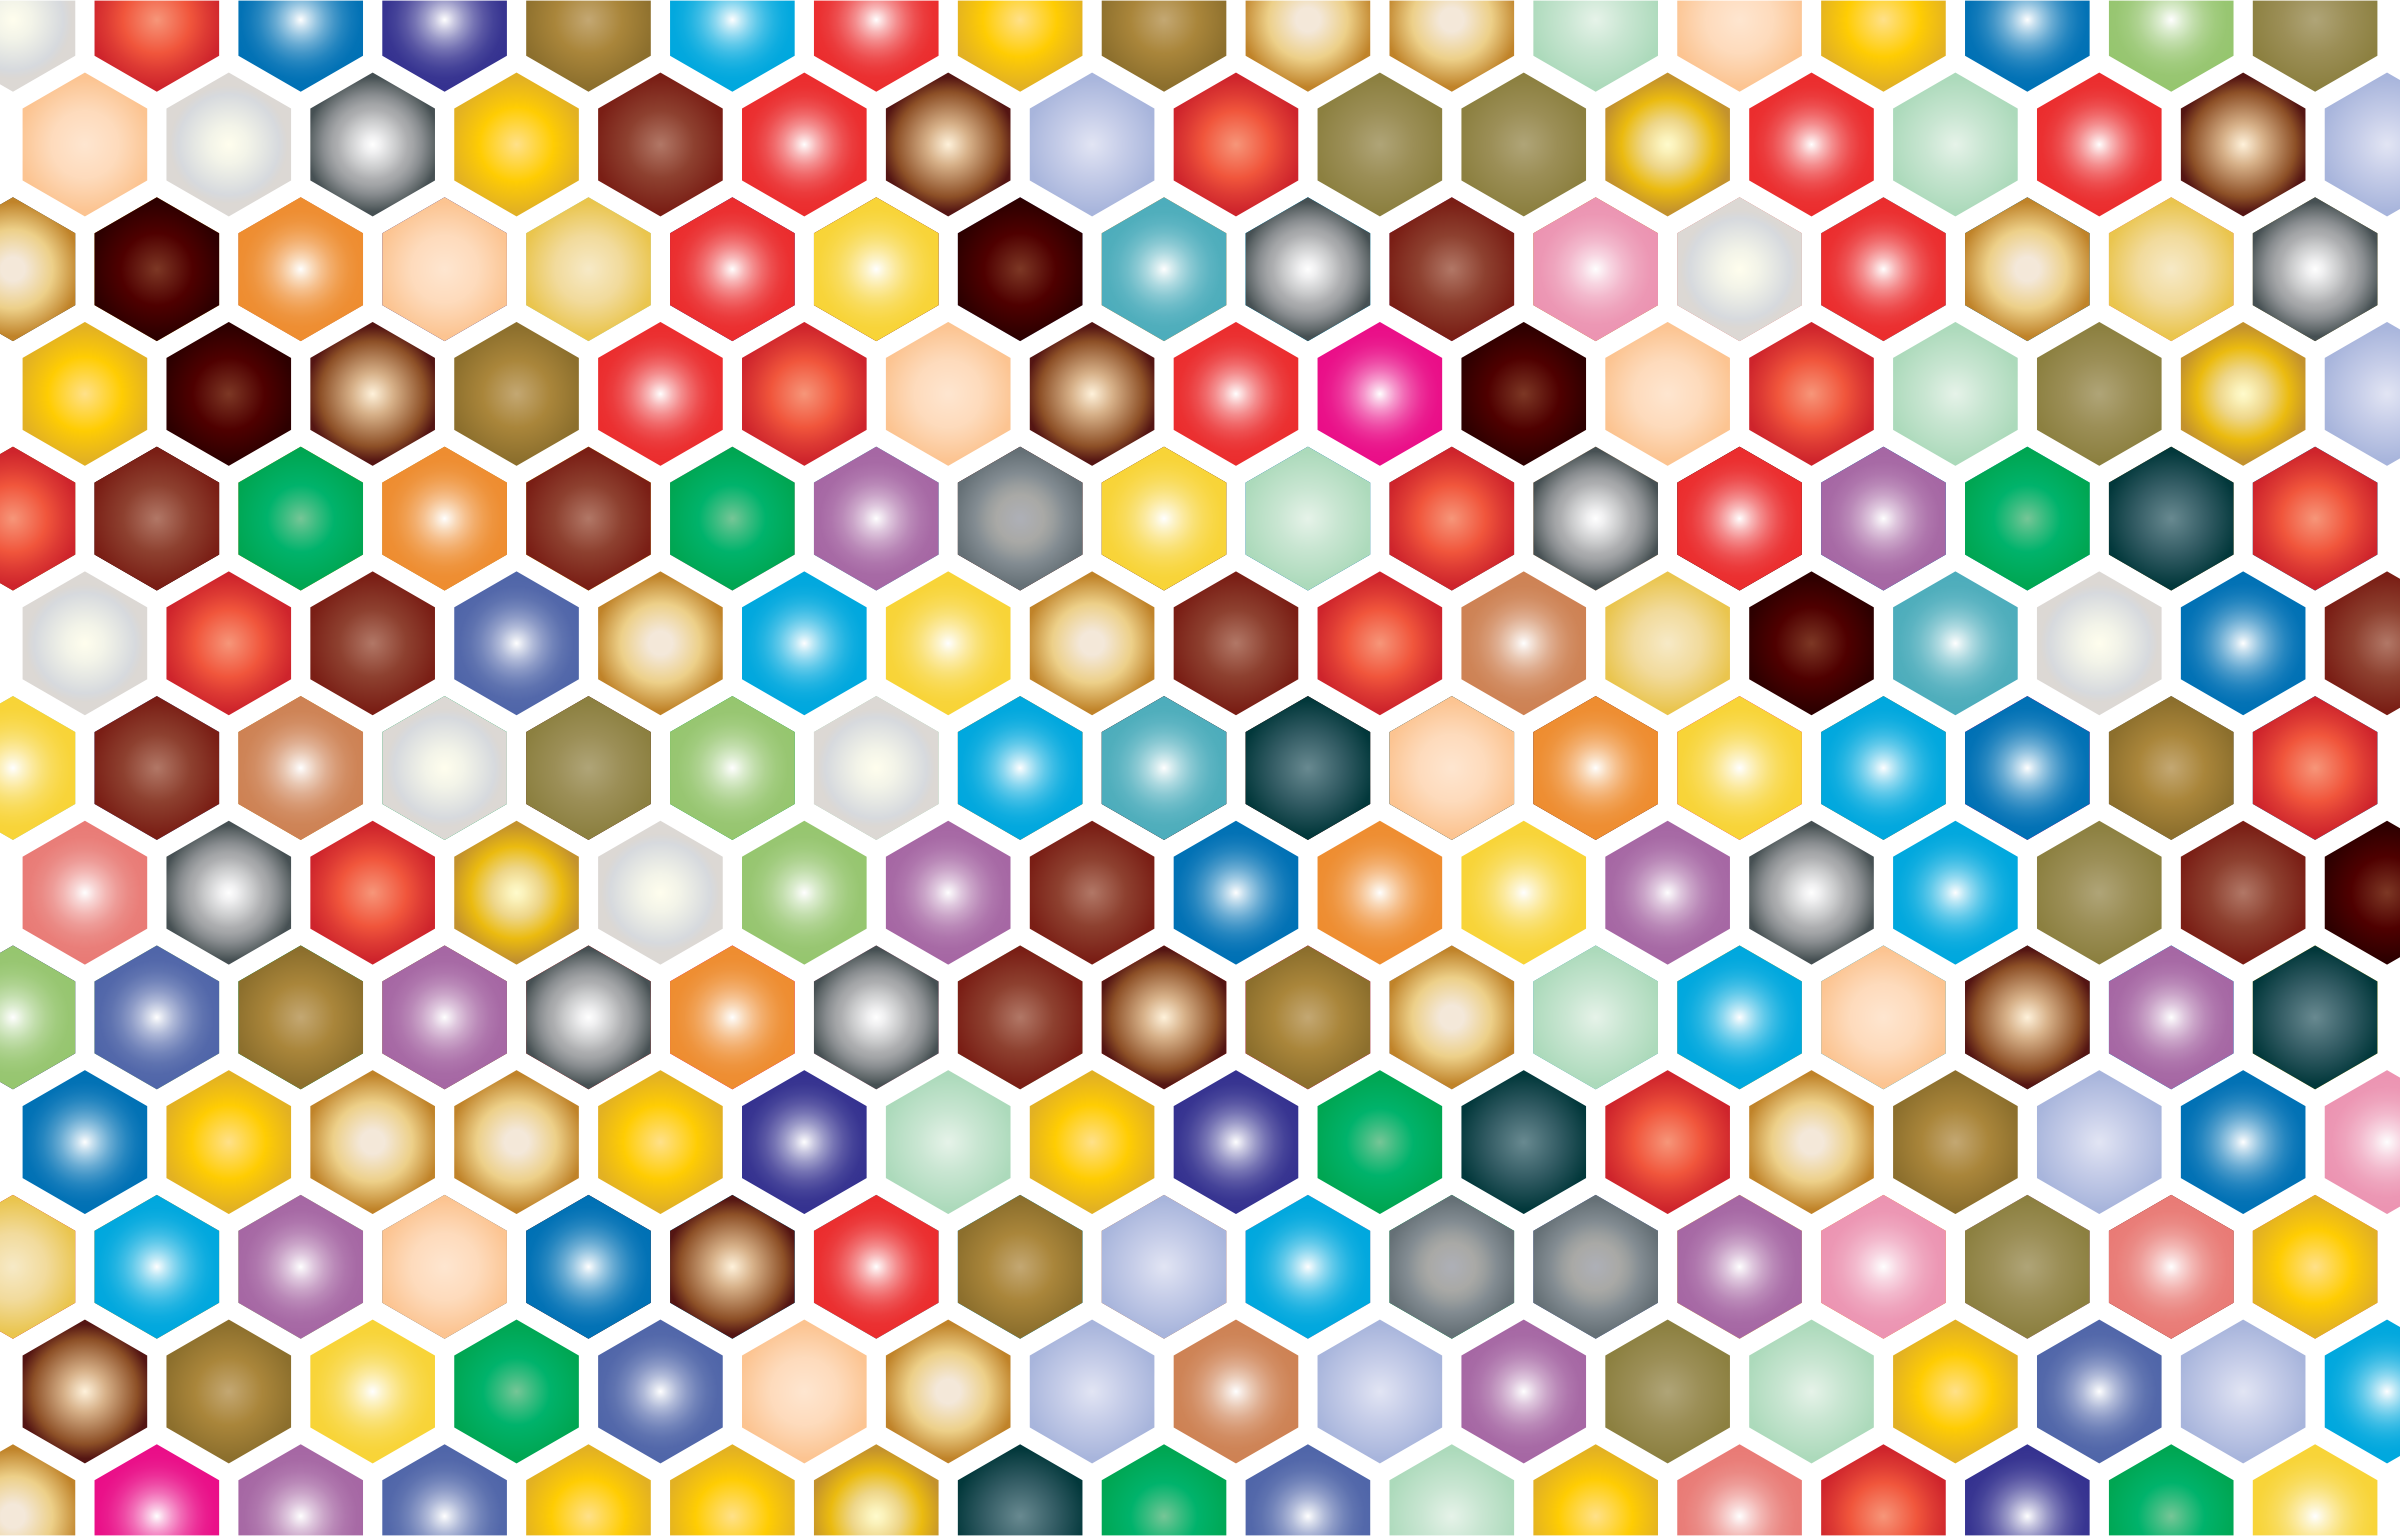 Hex grid png. Colorful pattern icons free